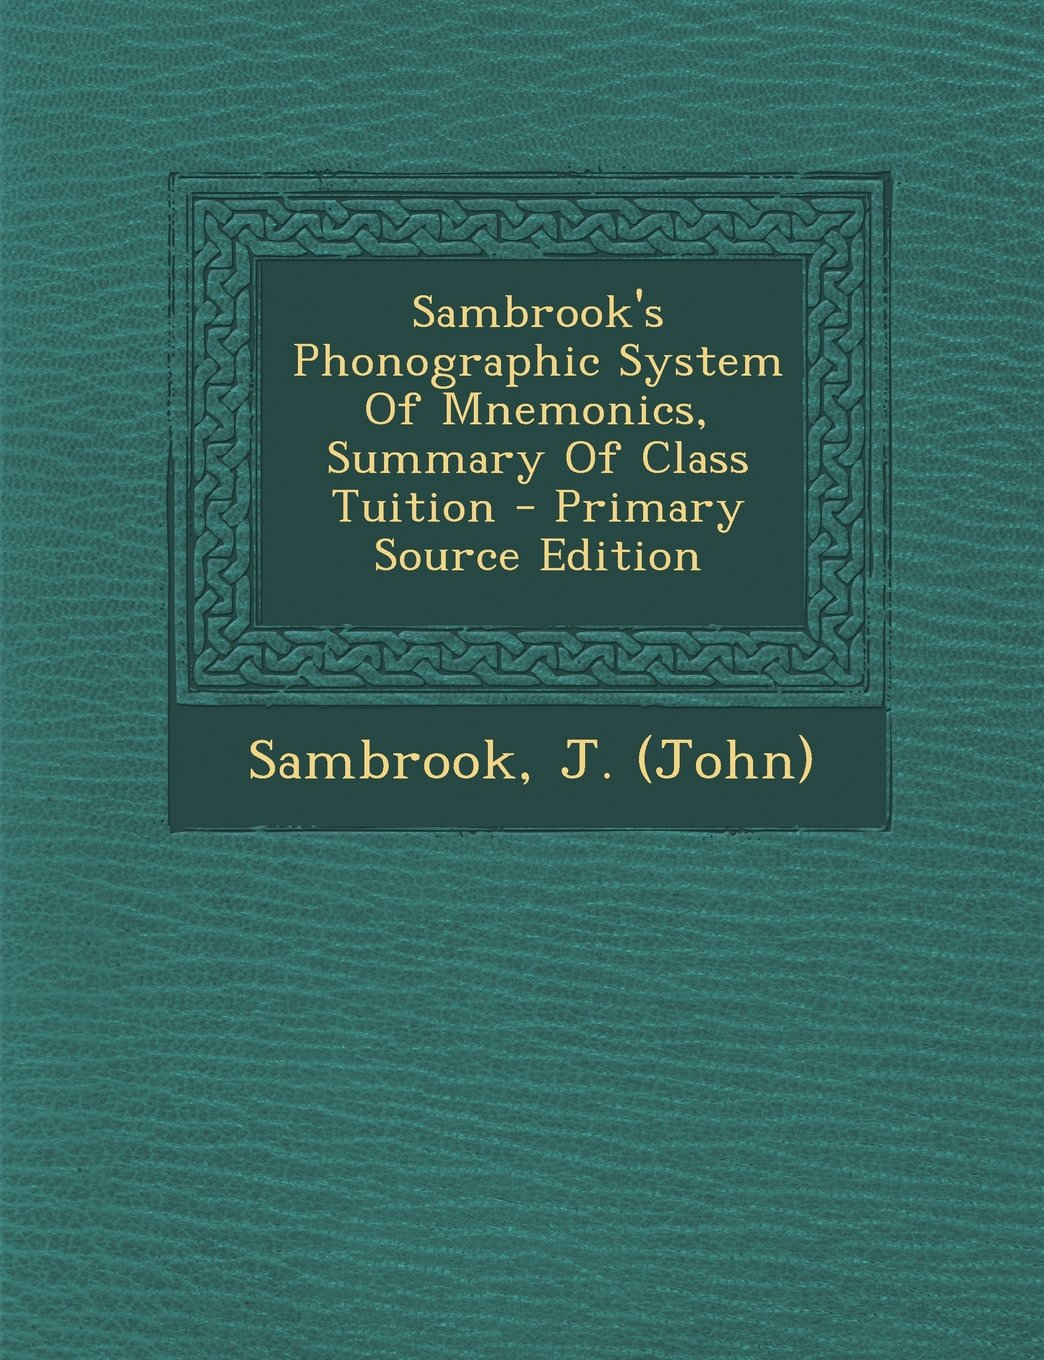 Download Sambrook's Phonographic System Of Mnemonics, Summary Of Class Tuition - Primary Source Edition pdf